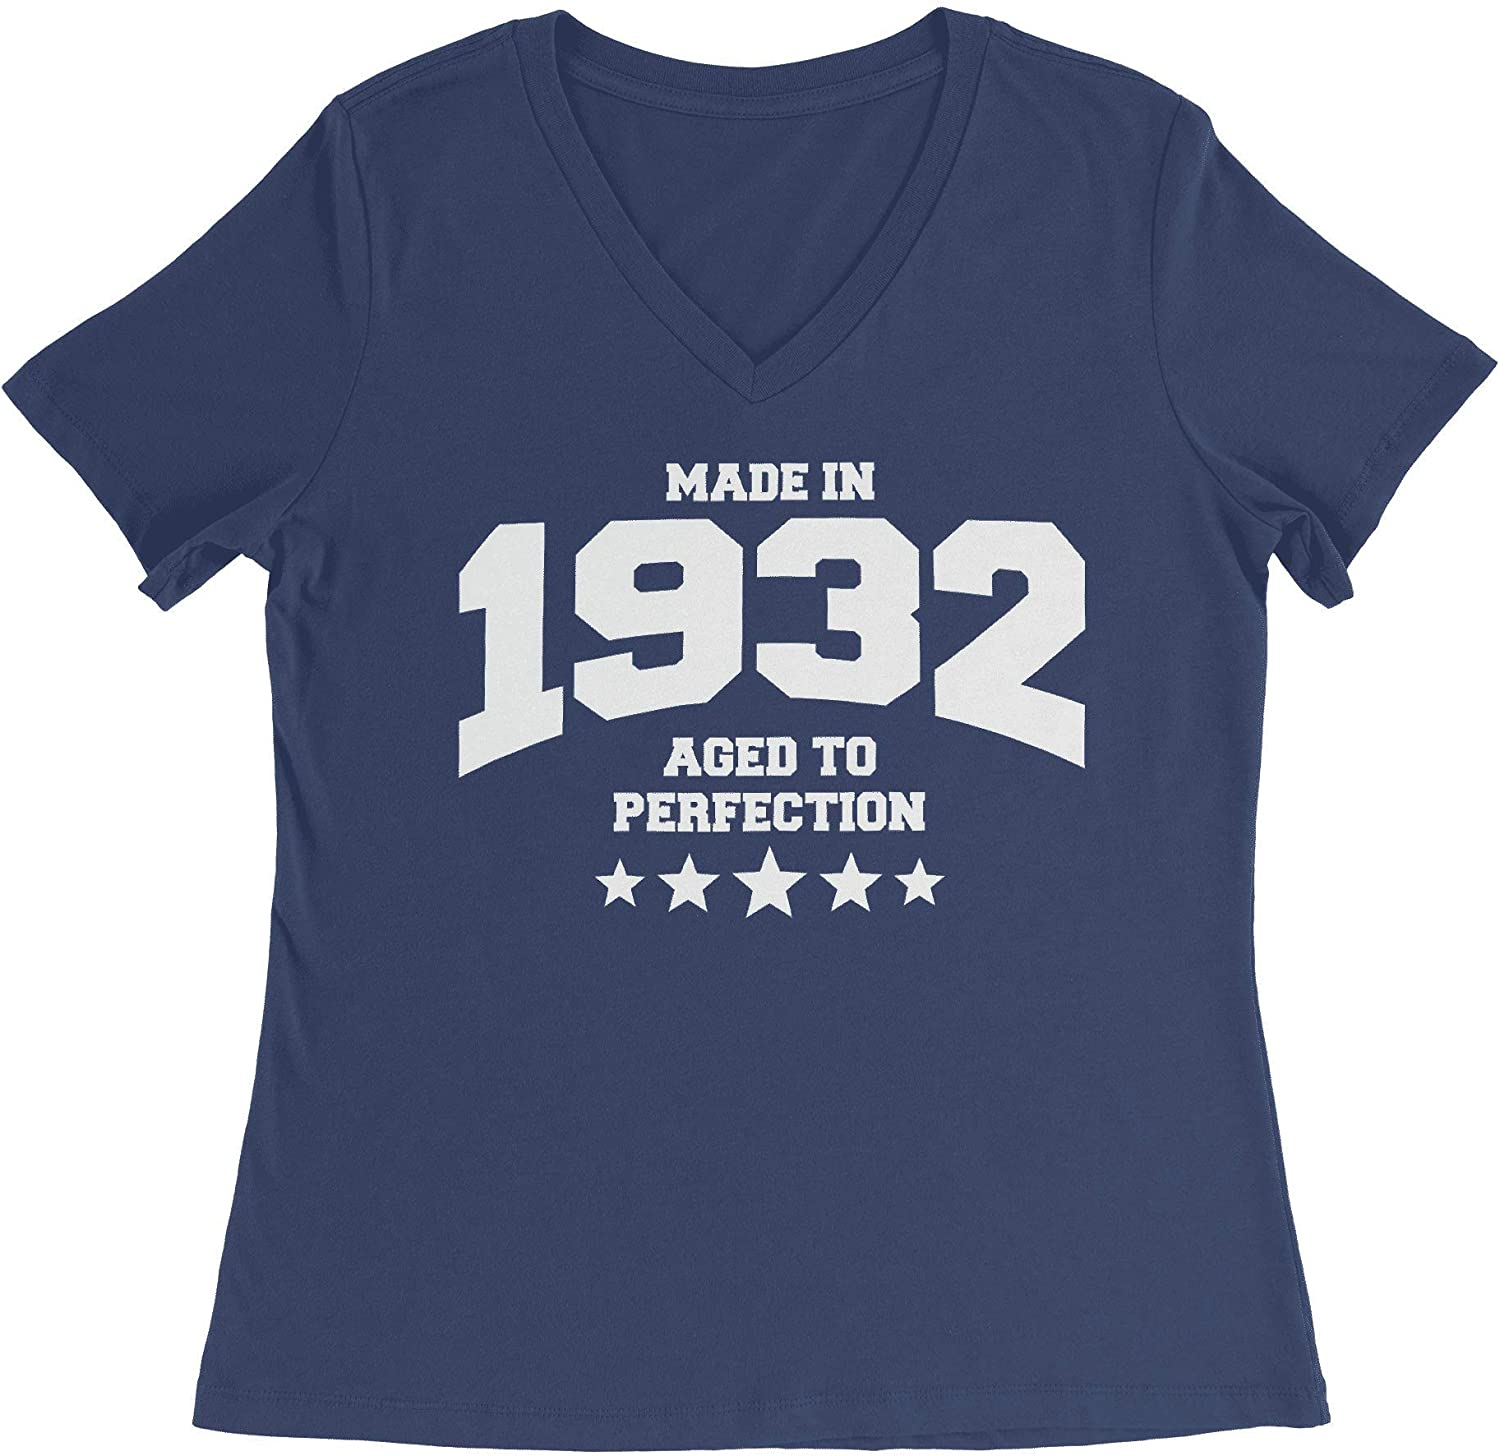 HARD EDGE DESIGN Women's Athletic Aged to Perfection - 1932 T-Shirt